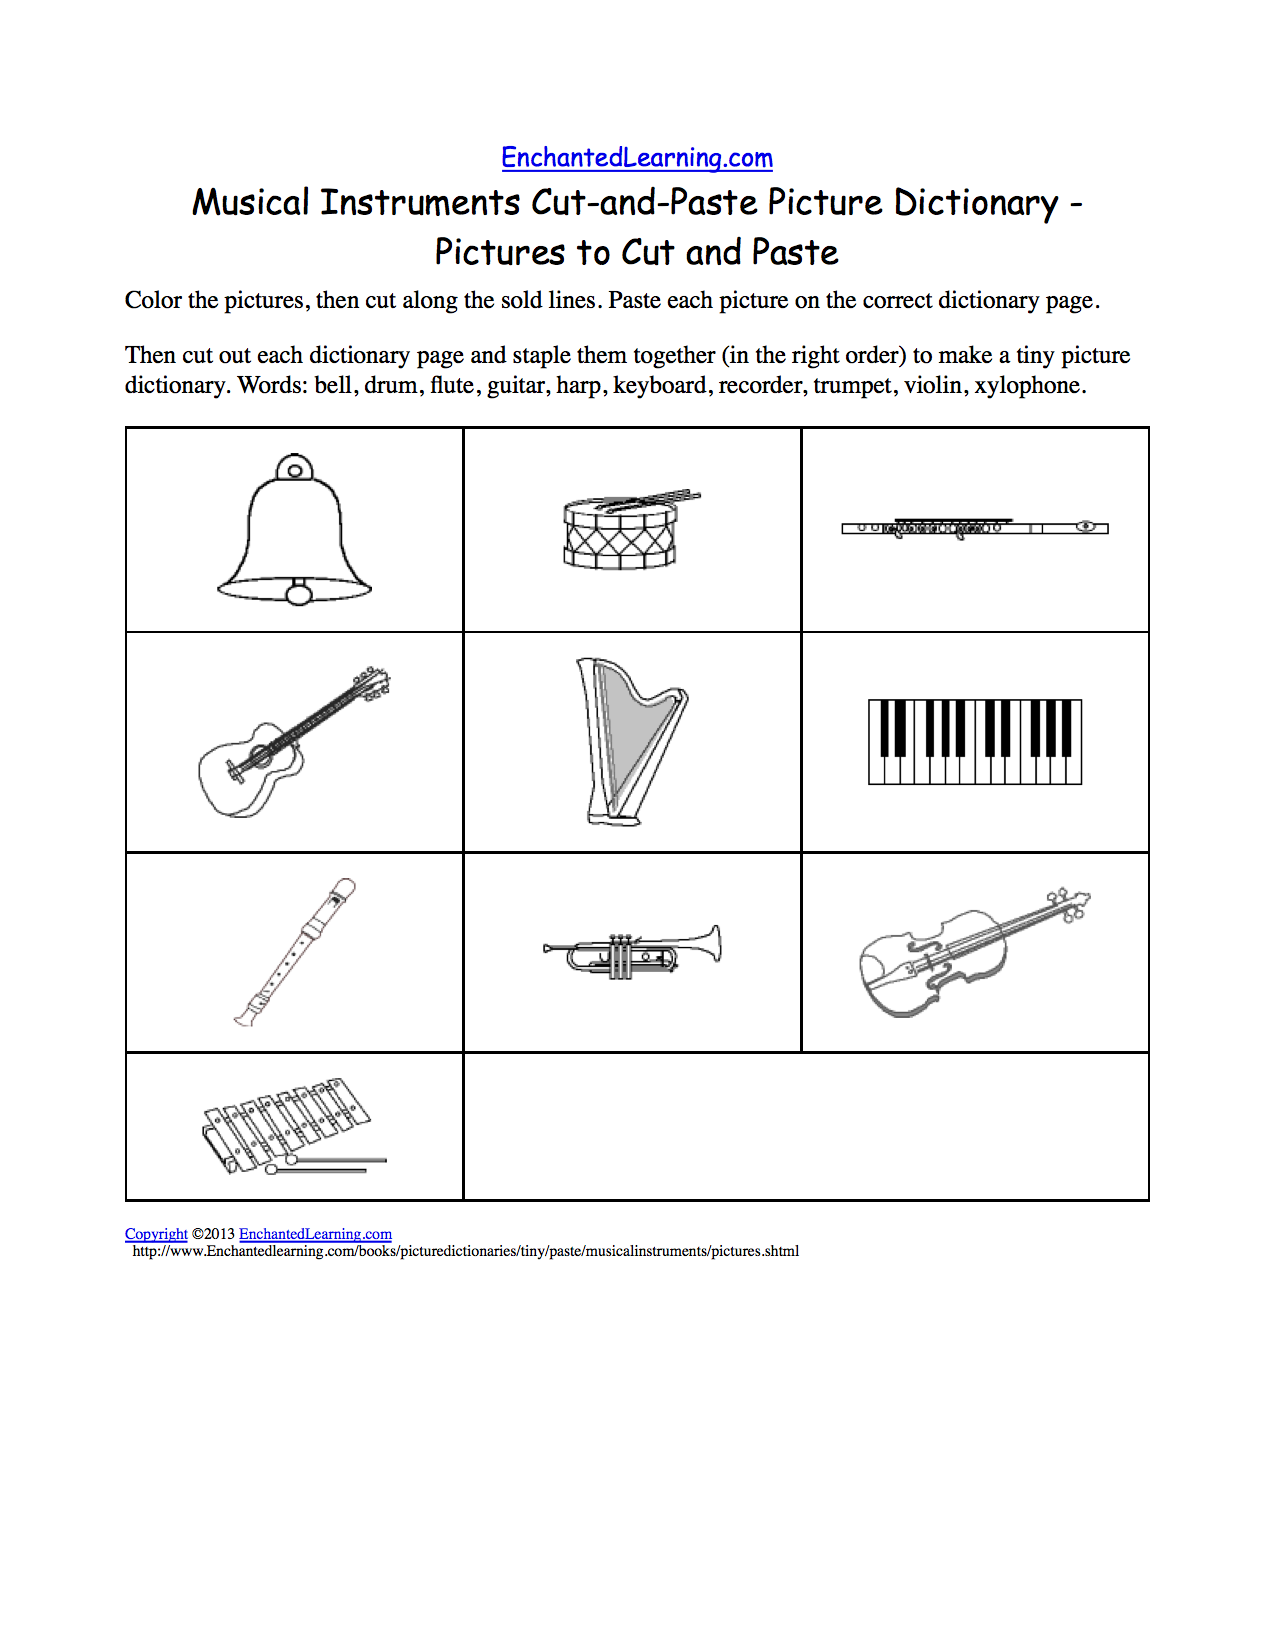 musical instruments cut and paste picture dictionary a short book to print enchantedlearning. Black Bedroom Furniture Sets. Home Design Ideas